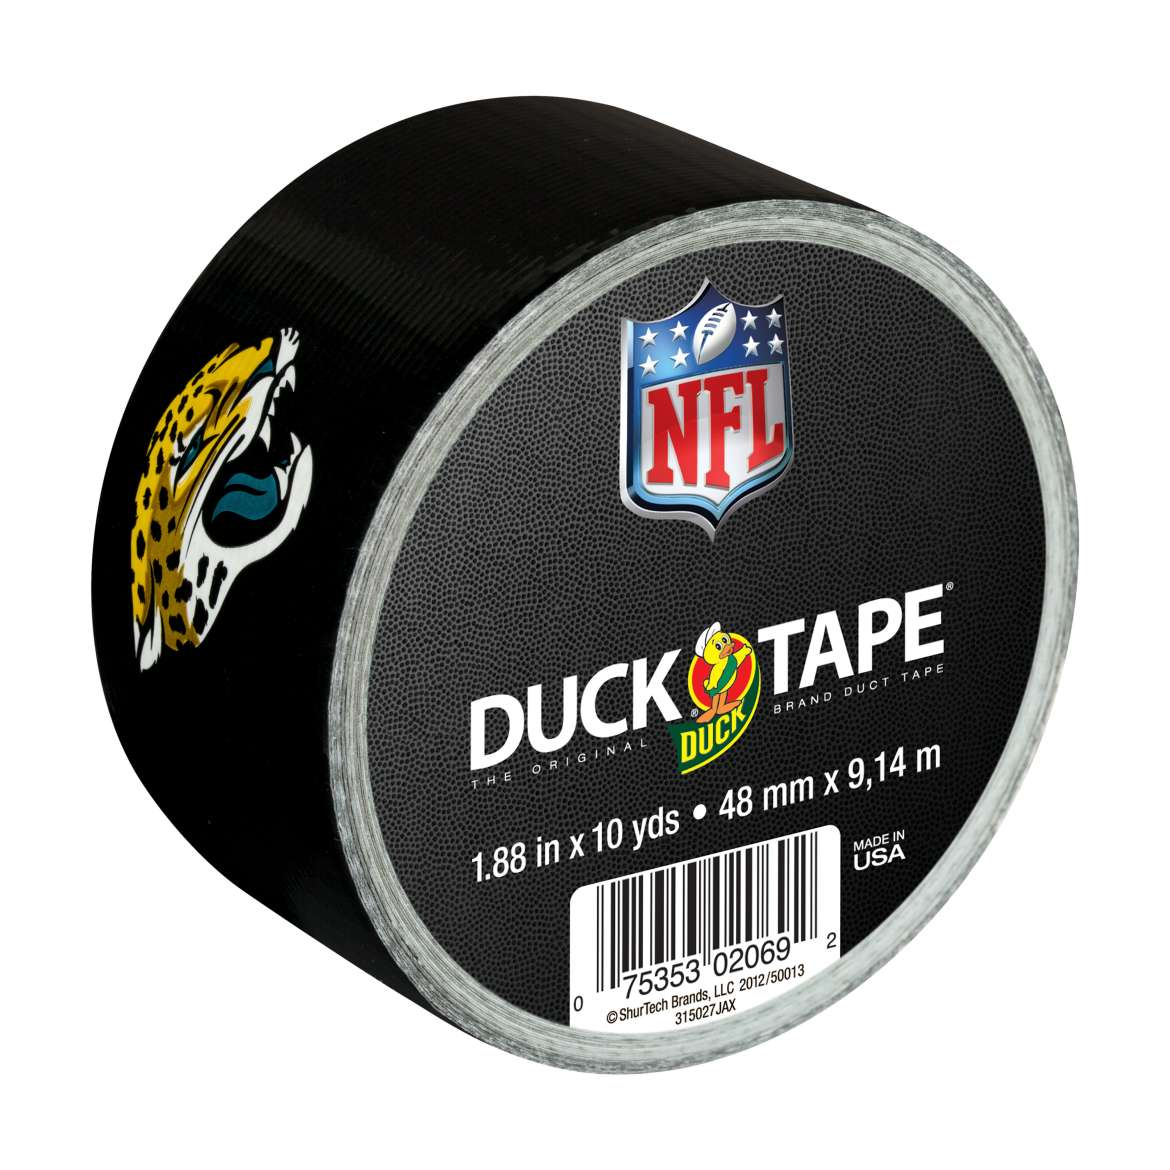 "Duck Brand Duct Tape, NFL Duck Tape, 1.88"" x 10 yard, Jacksonville Jaguars"